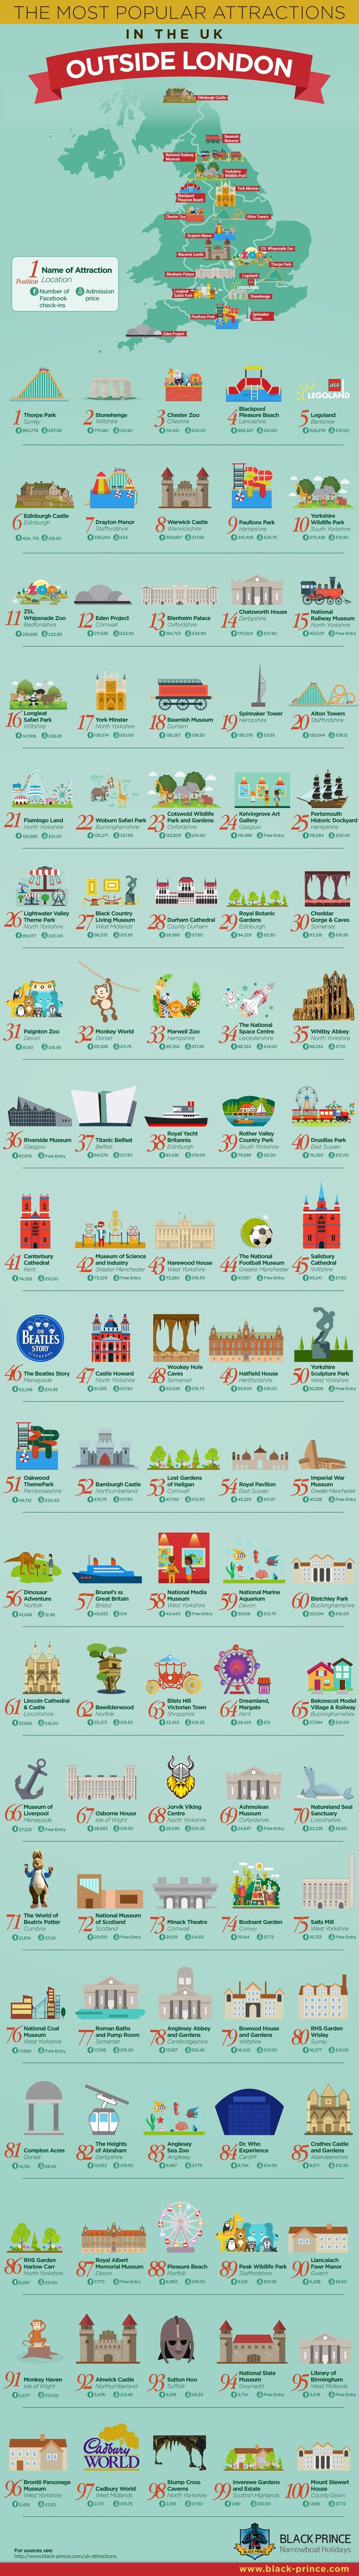 Most Popular Attractions Outside of London  #RePin by AT Social Media Marketing - Pinterest Marketing Specialists ATSocialMedia.co.uk